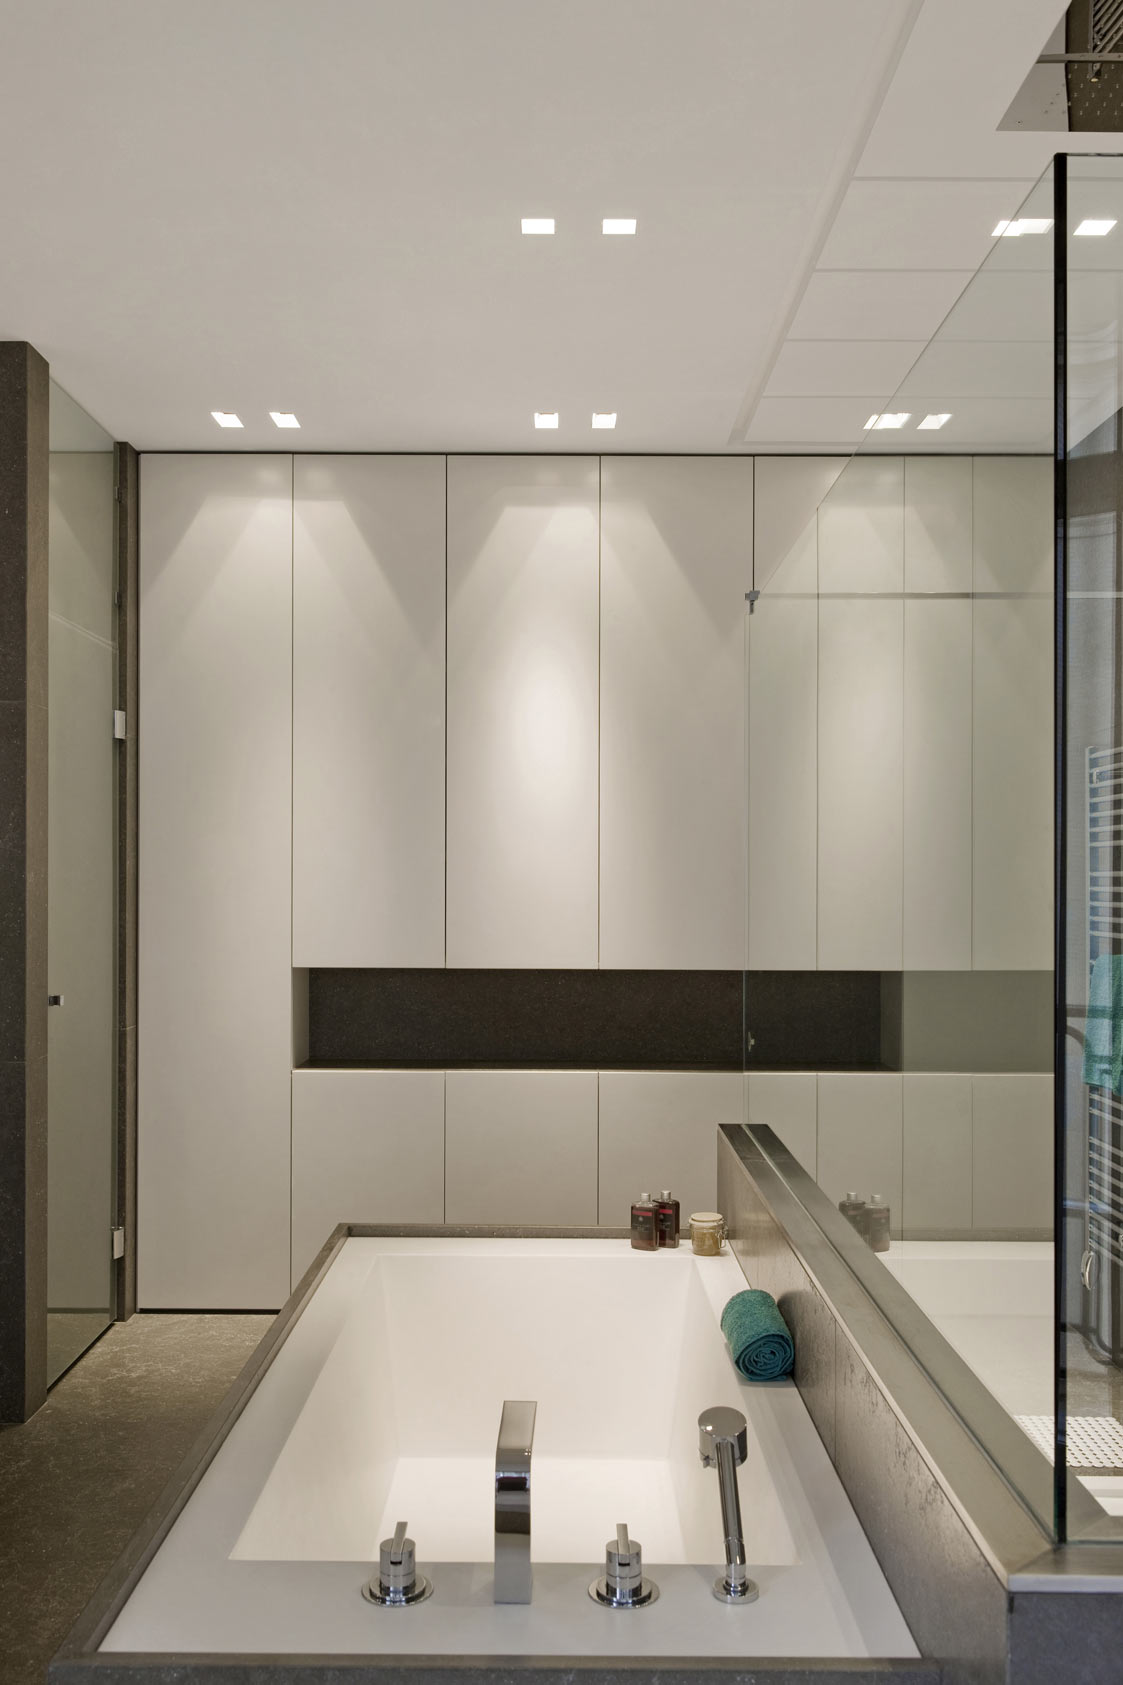 Bathroom g paris laurent brandajs photographer for H g bathrooms brookvale